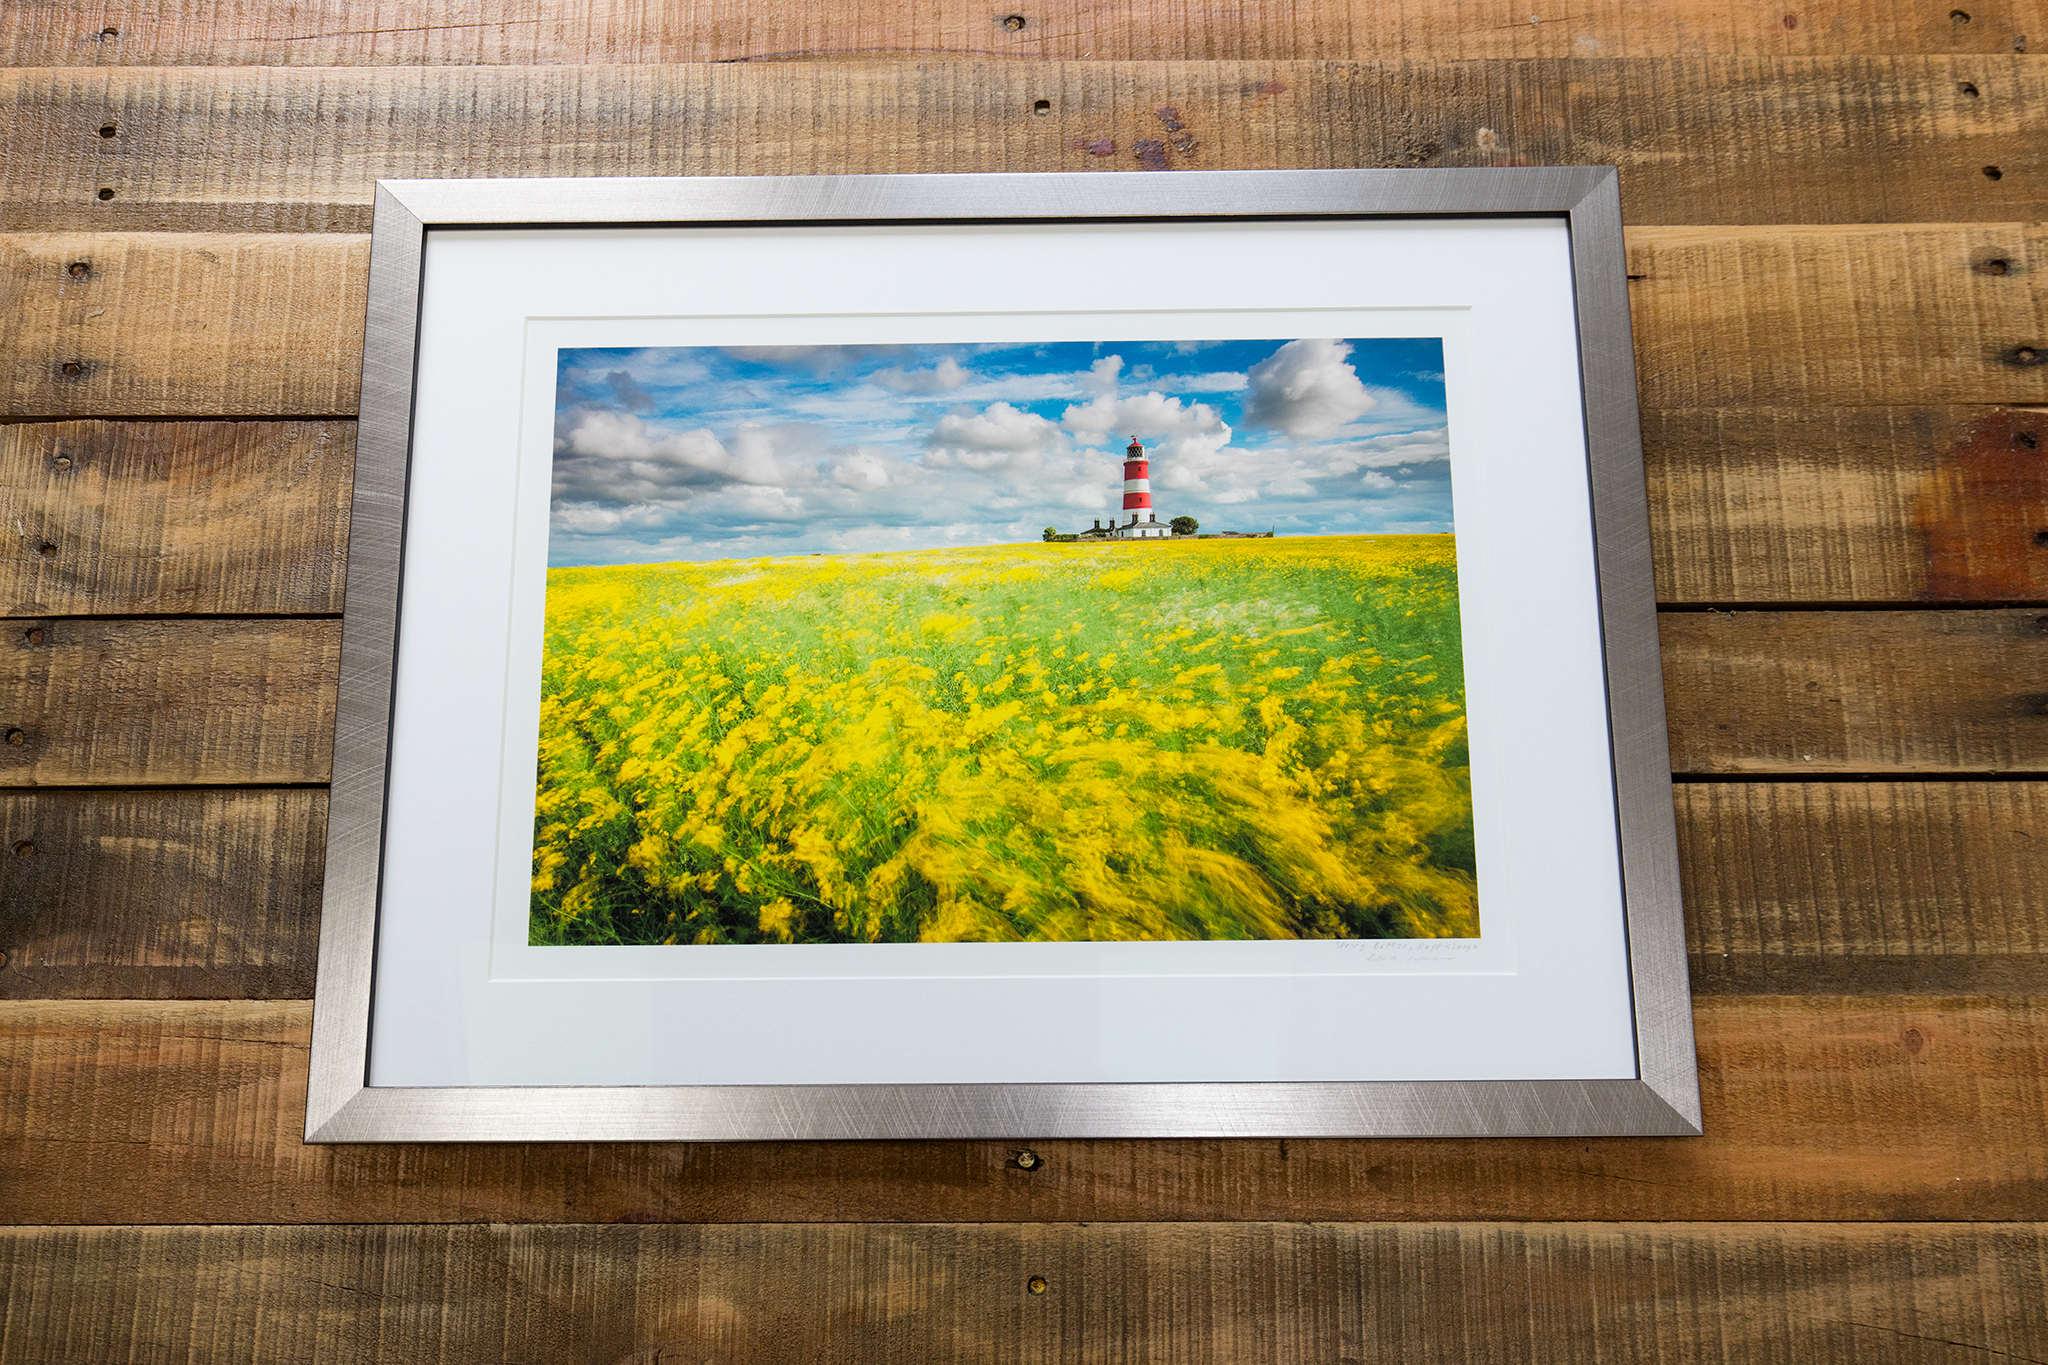 Picture Framing, Mounting and Giclee Printing